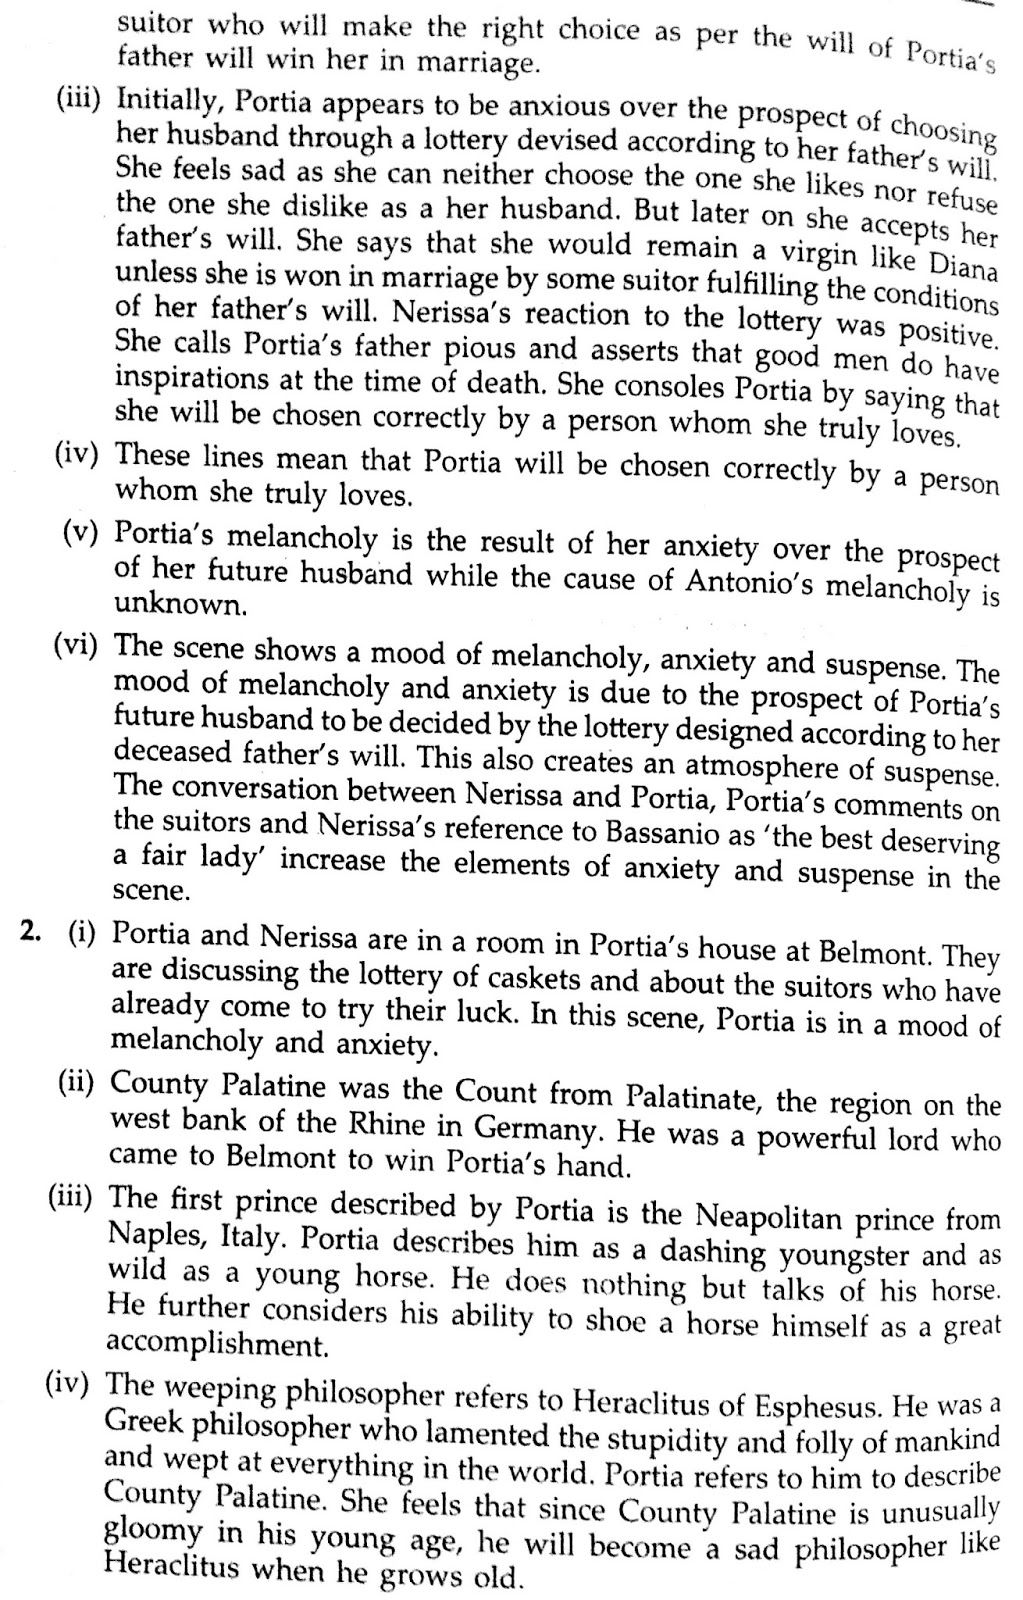 Solved Textbook Workbook Answer Solution Of The Merchant Venice Act 1 Scene 2 Merchants Text With Paraphrase Pdf